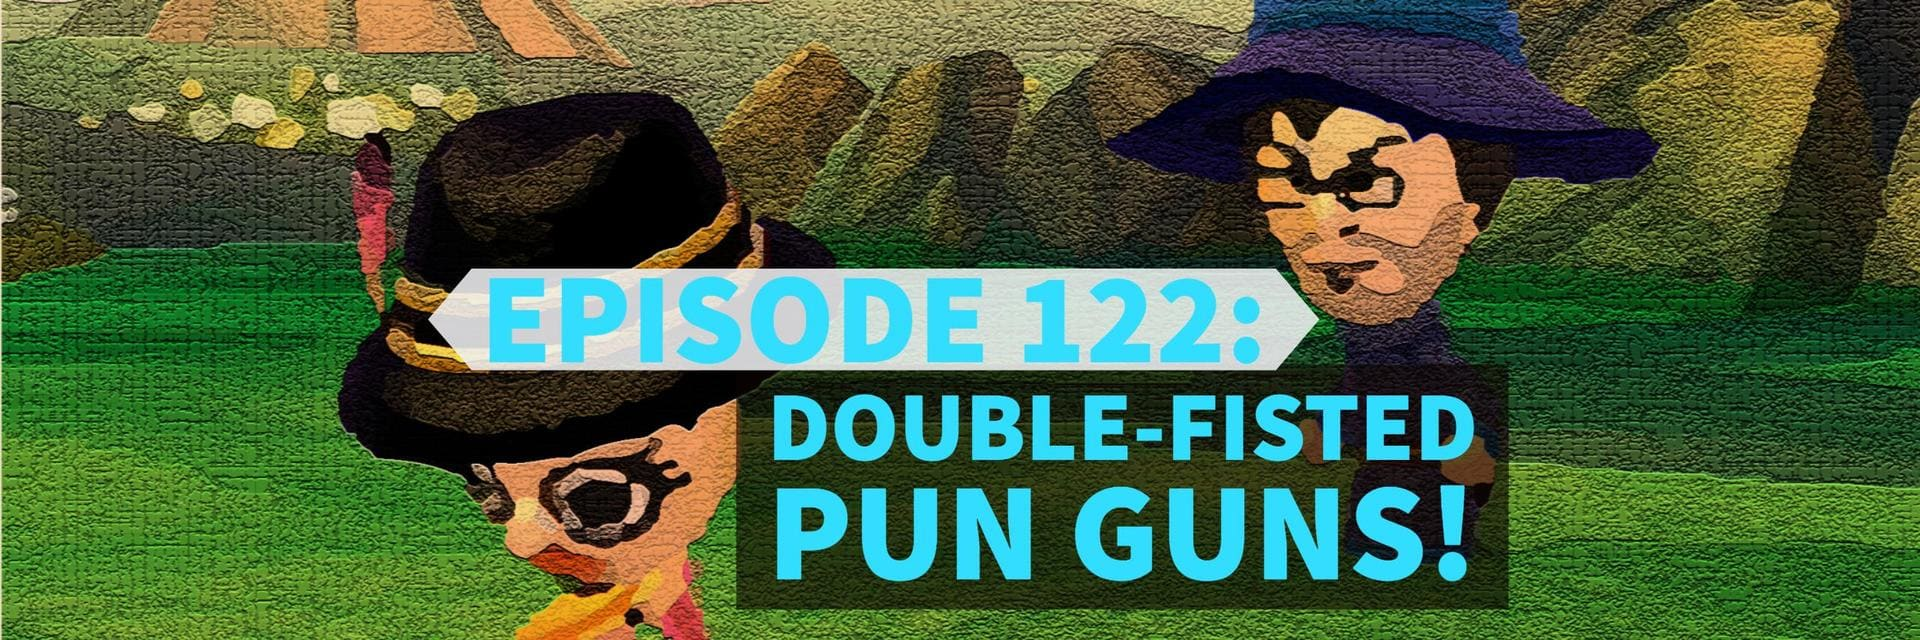 Episode 122: Double-Fisted Pun Guns!